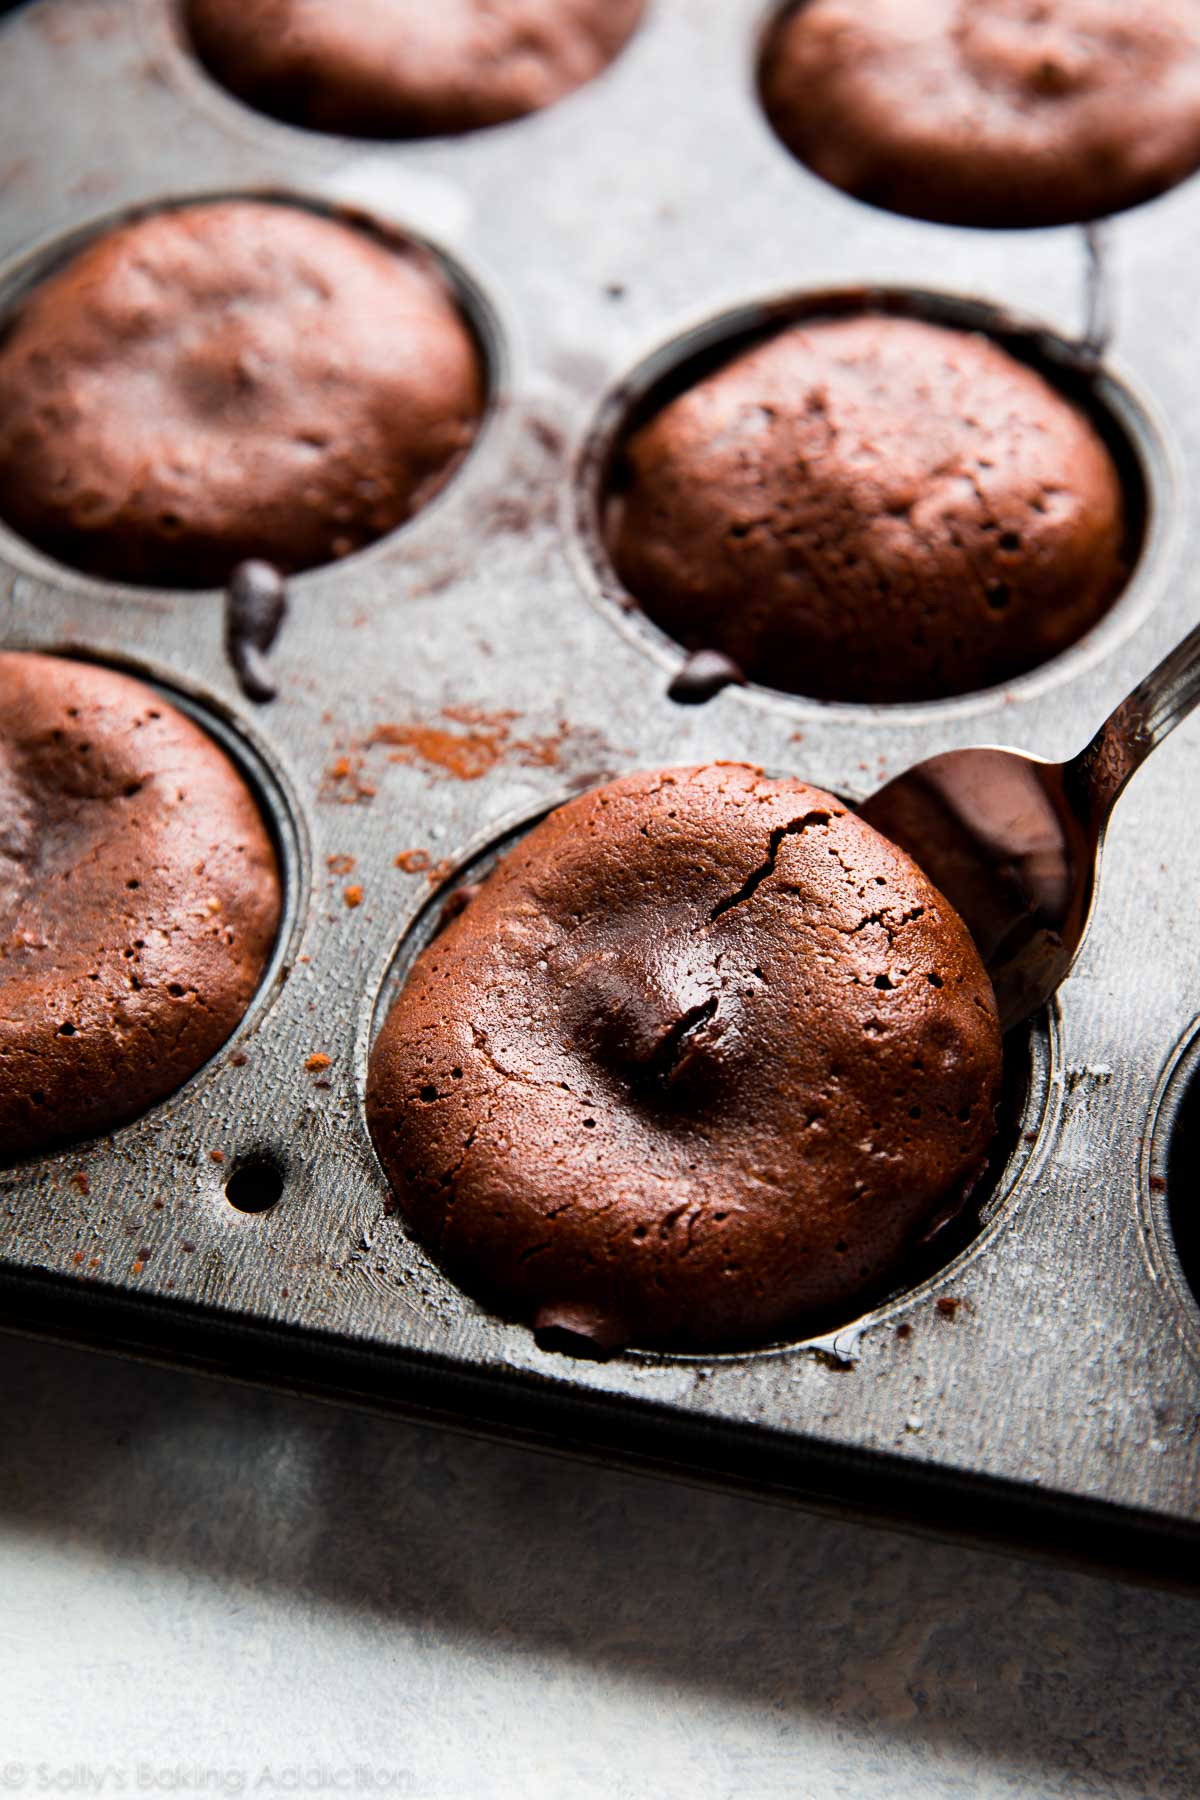 How To Make Chocolate Lava Cakes Video Sallys Baking